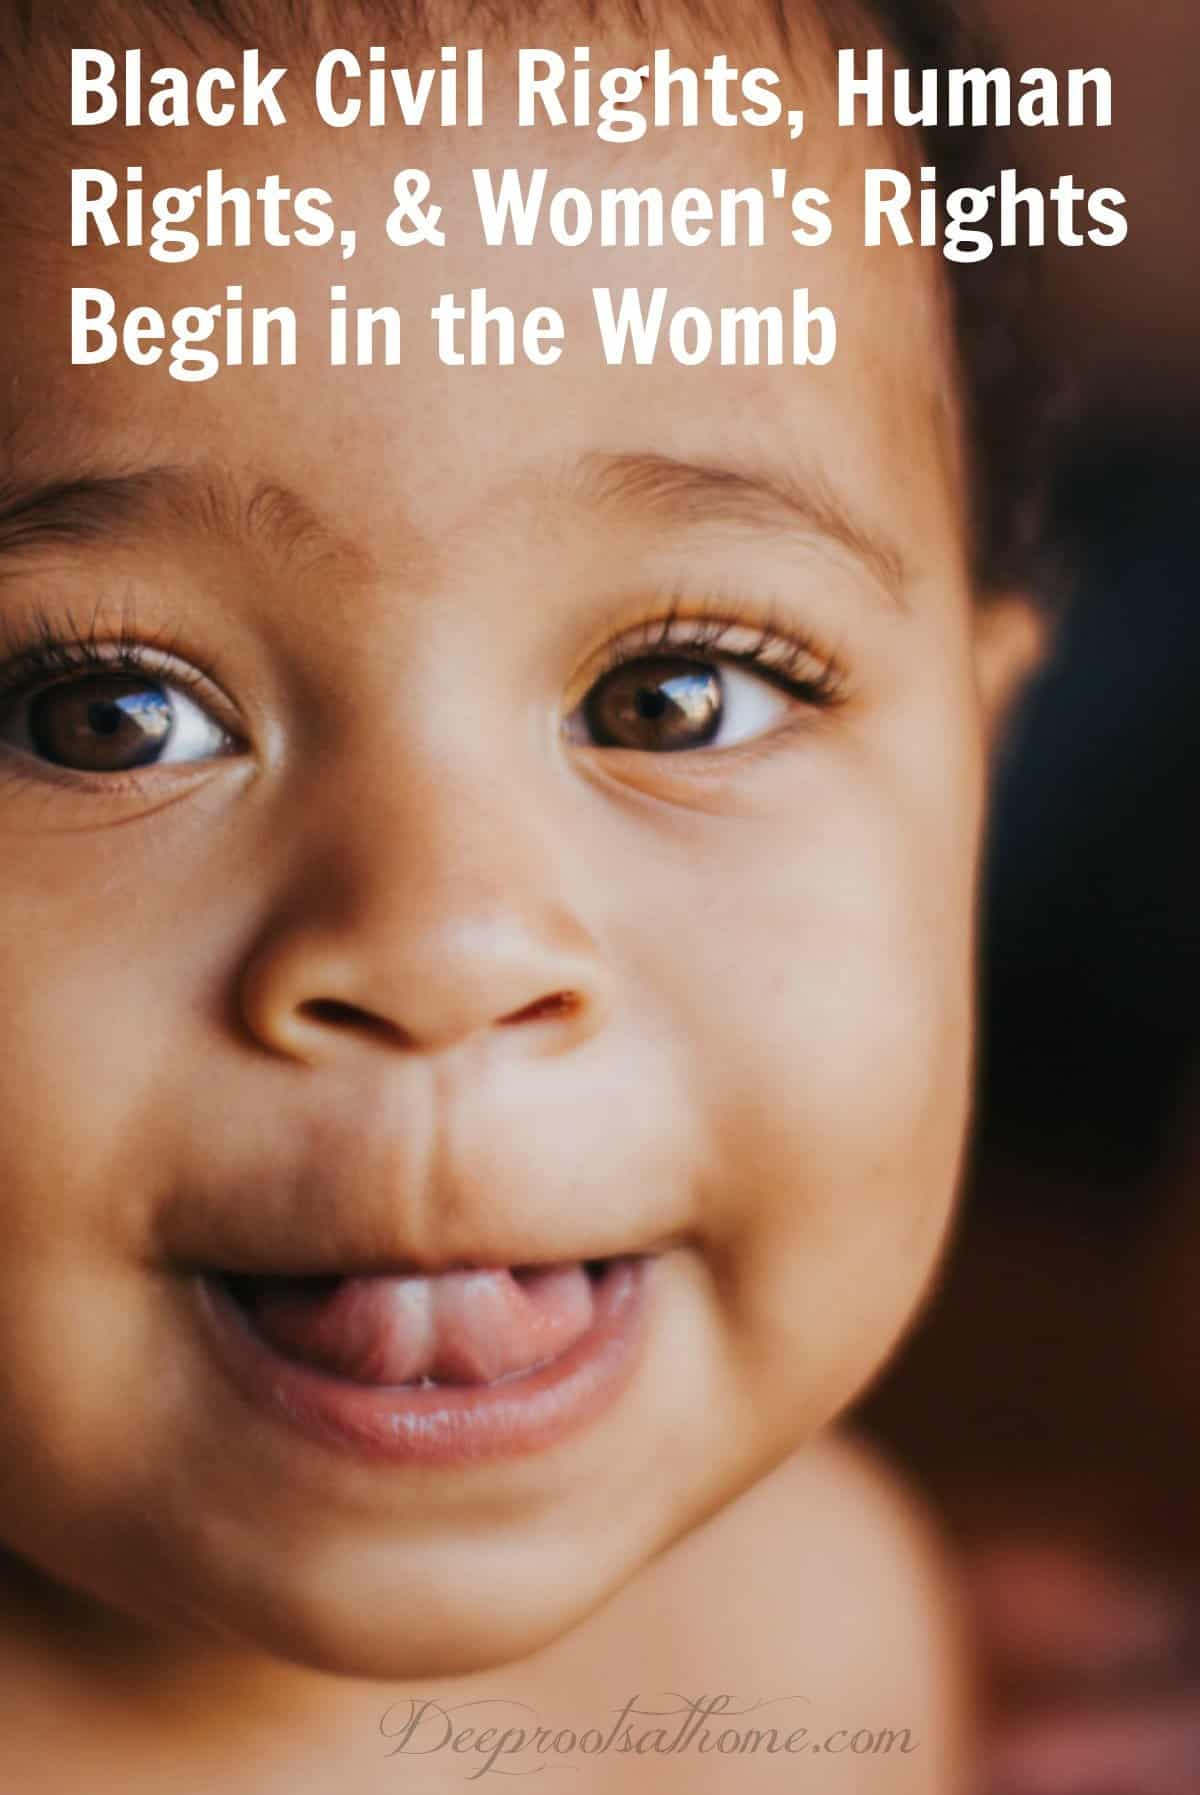 Black Civil Rights, Human Rights, & Women's Rights Begin in the Womb. black baby